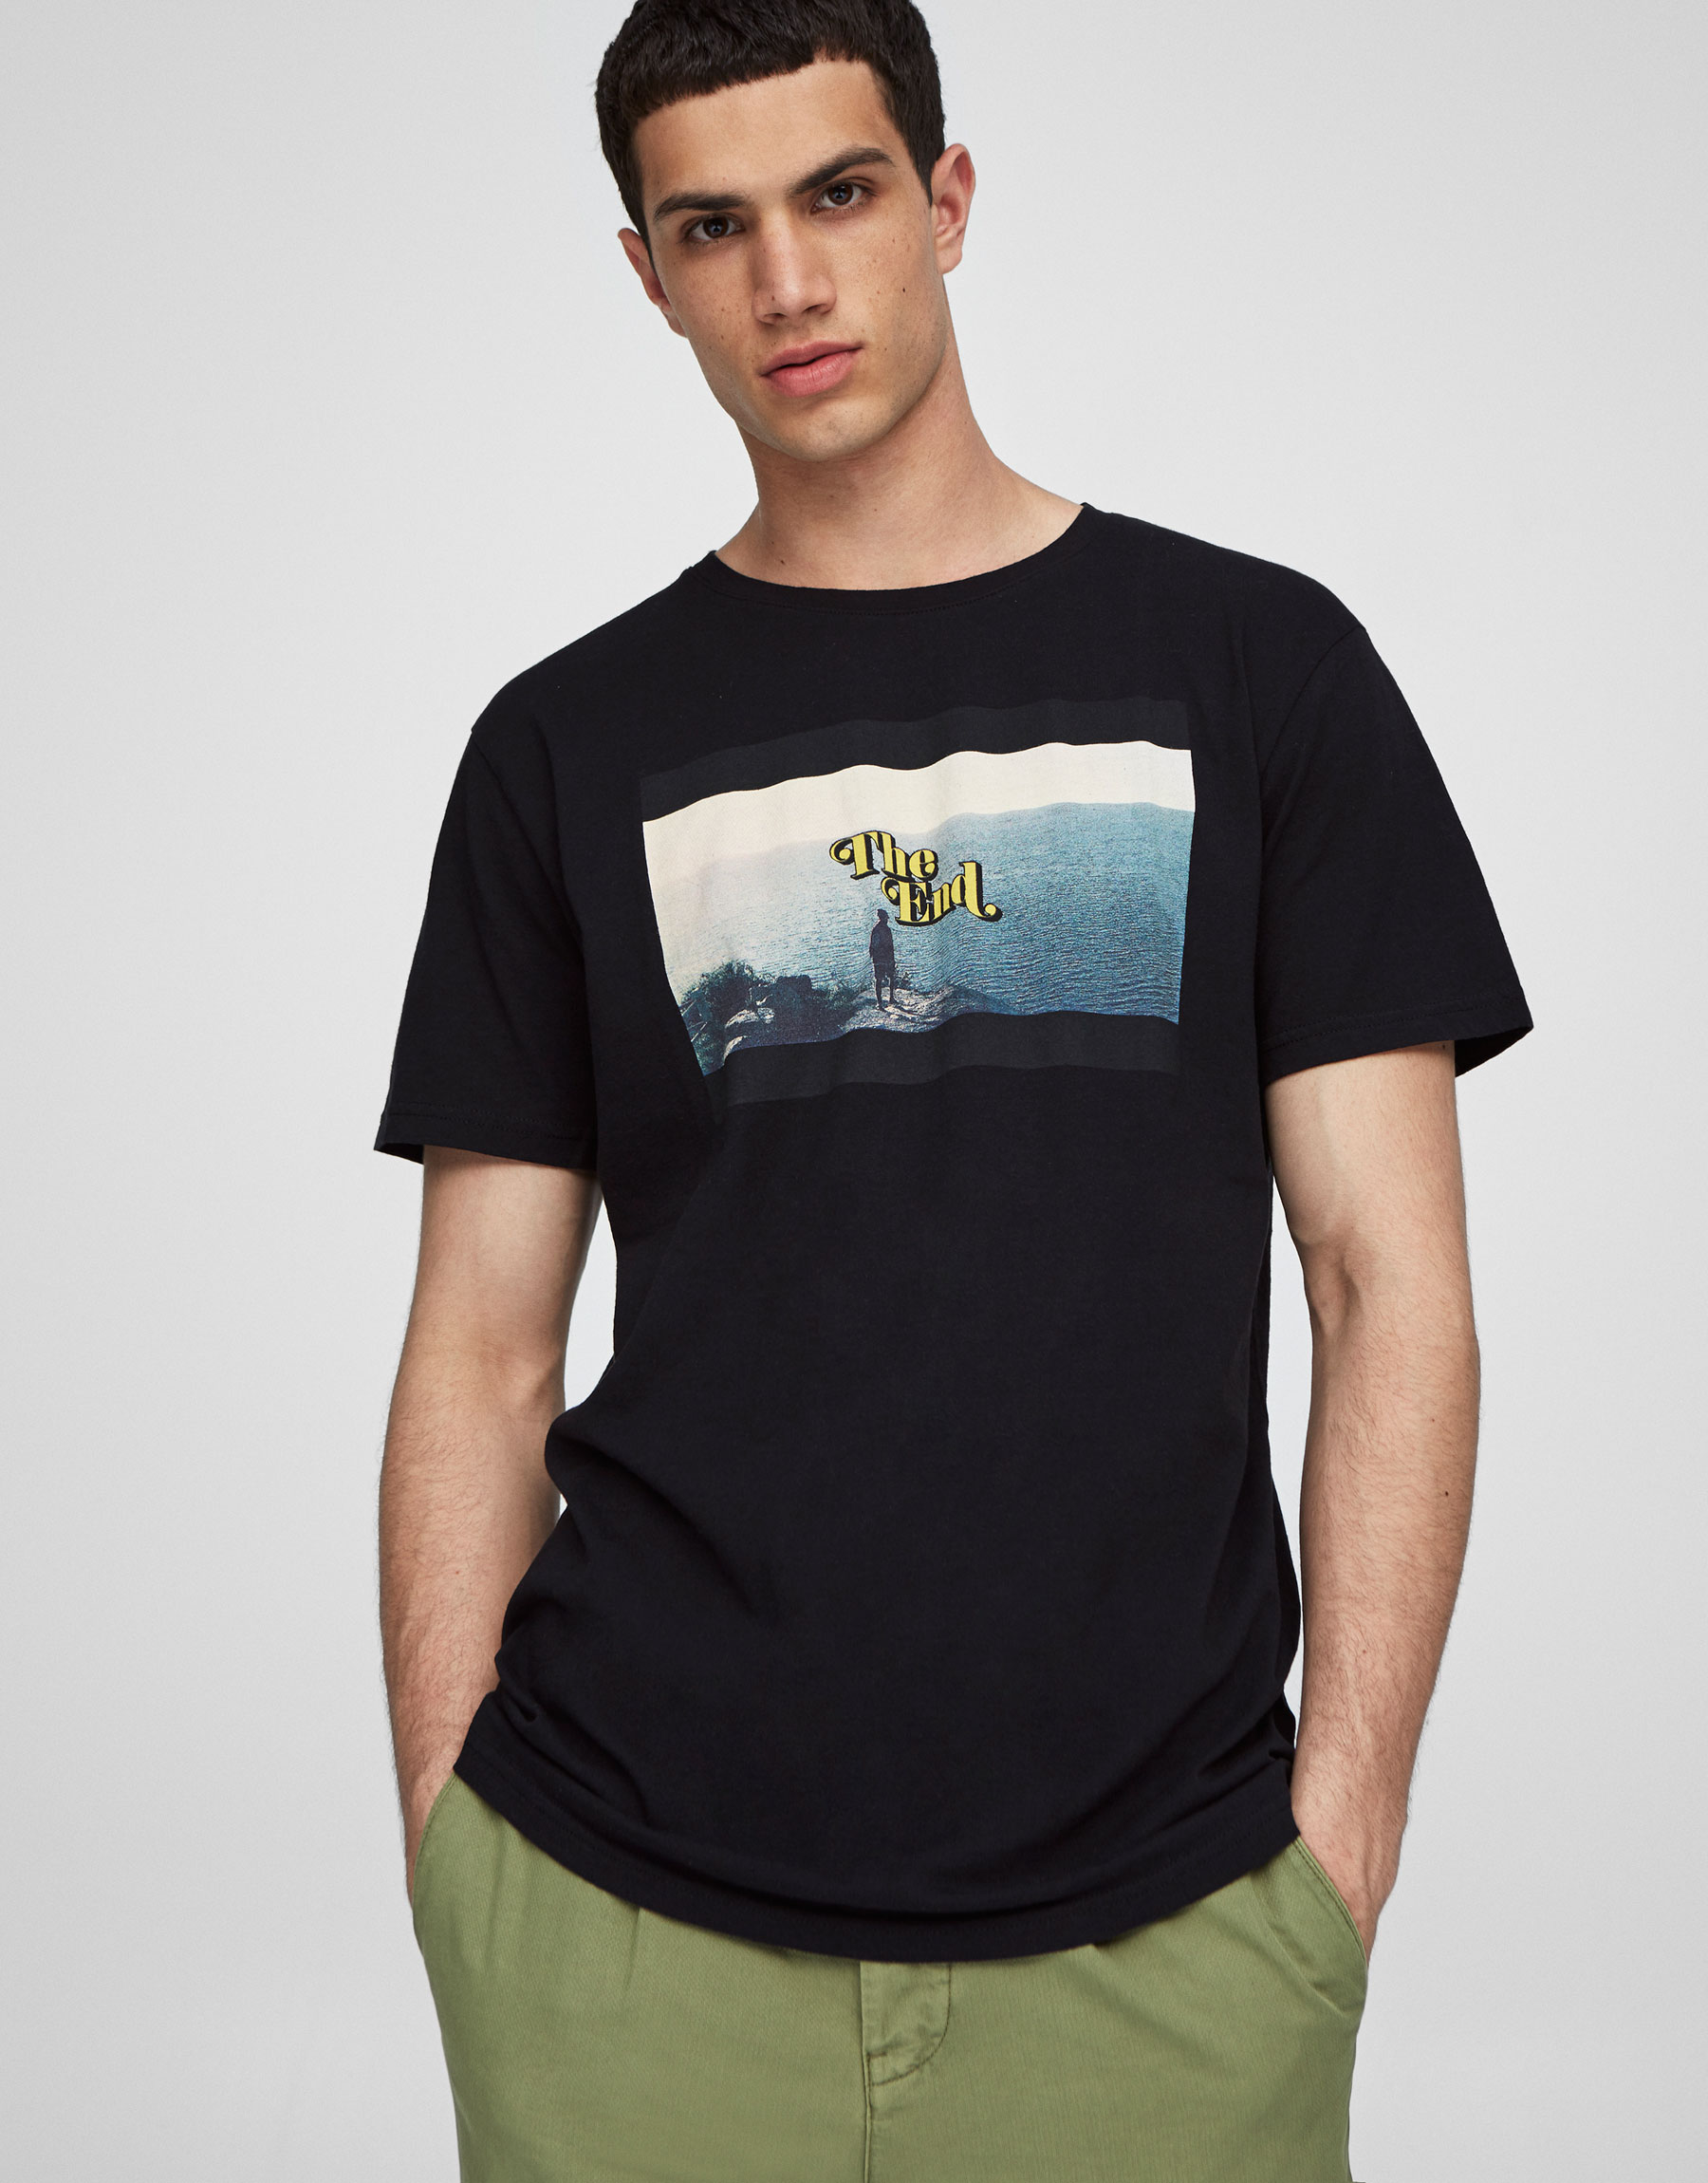 Photo print round neck T-shirt